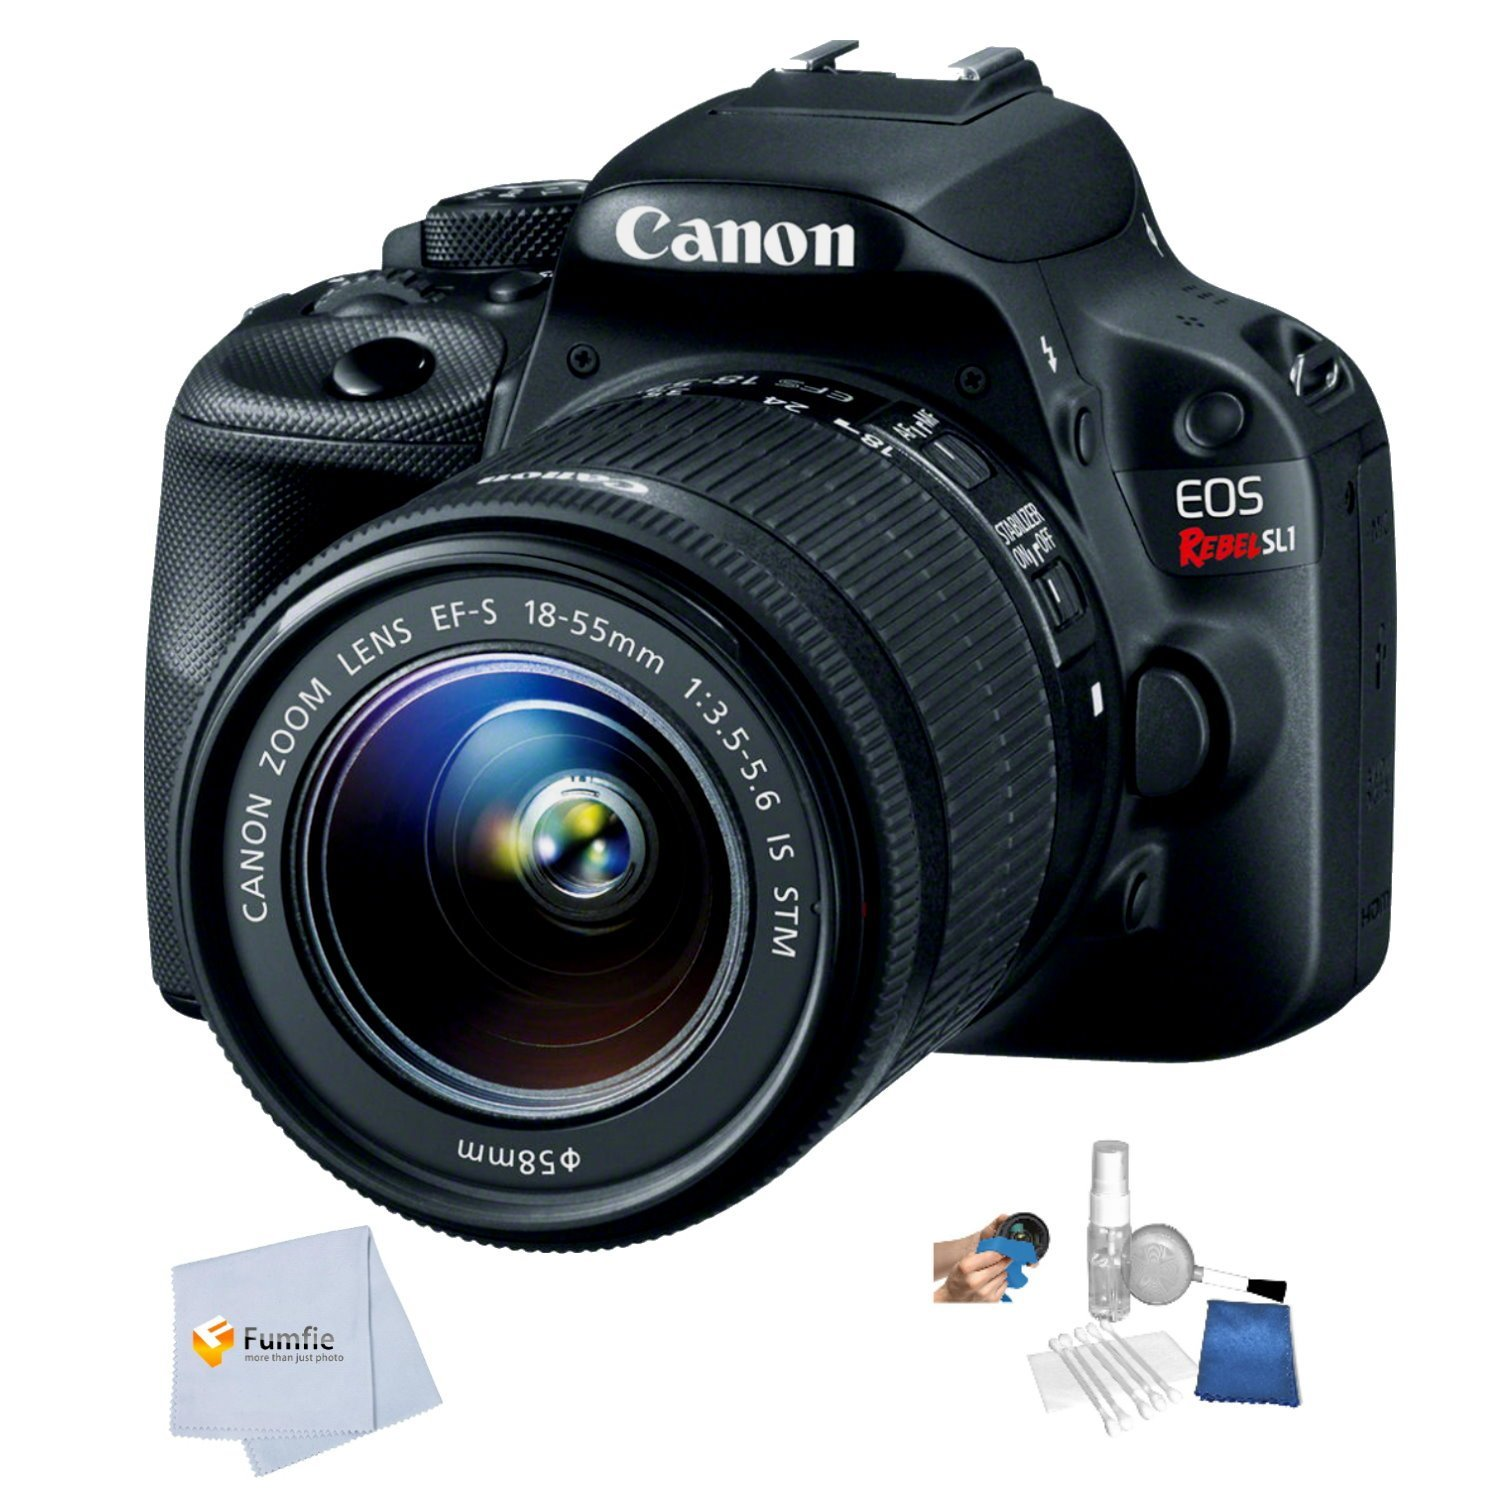 Canon EOS Rebel SL1 DSLR Camera with 18-55mm Lens – International Version (No Warranty)